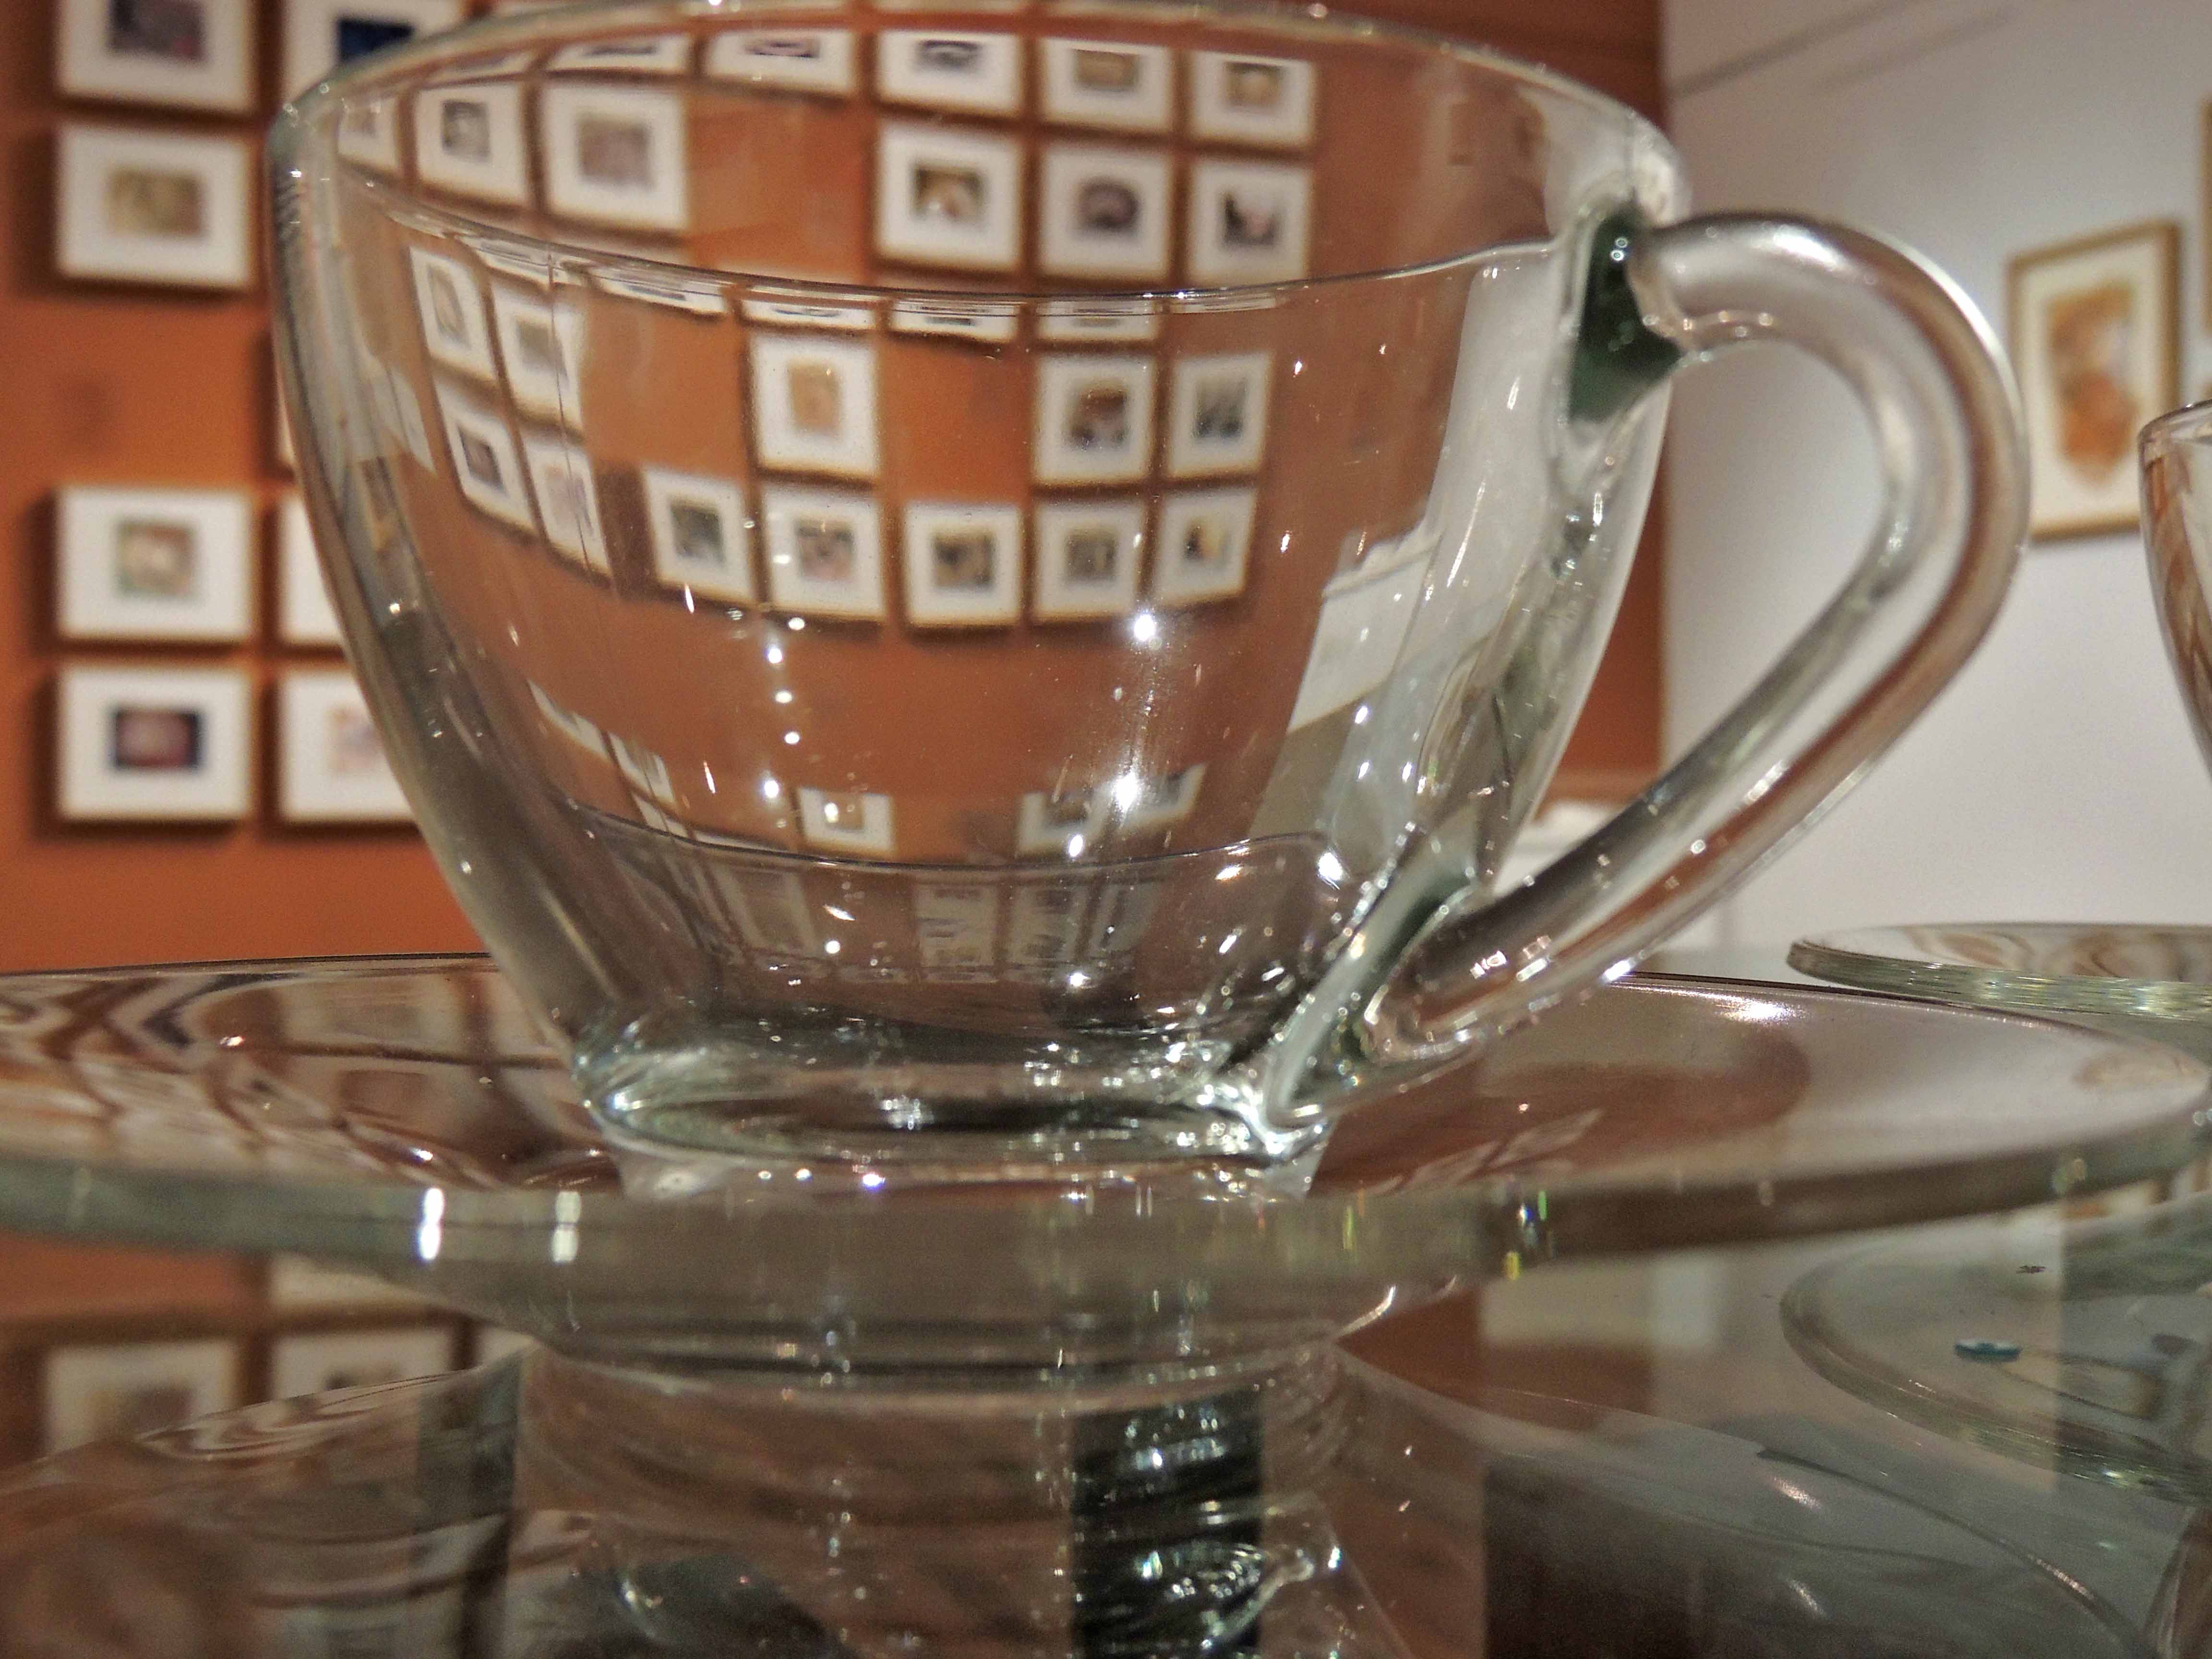 Image 13 : Display image of The Piercing Needle, Work in view: The Universe in My Tea Cup [set of 30 works], Photo credit: gopika nath